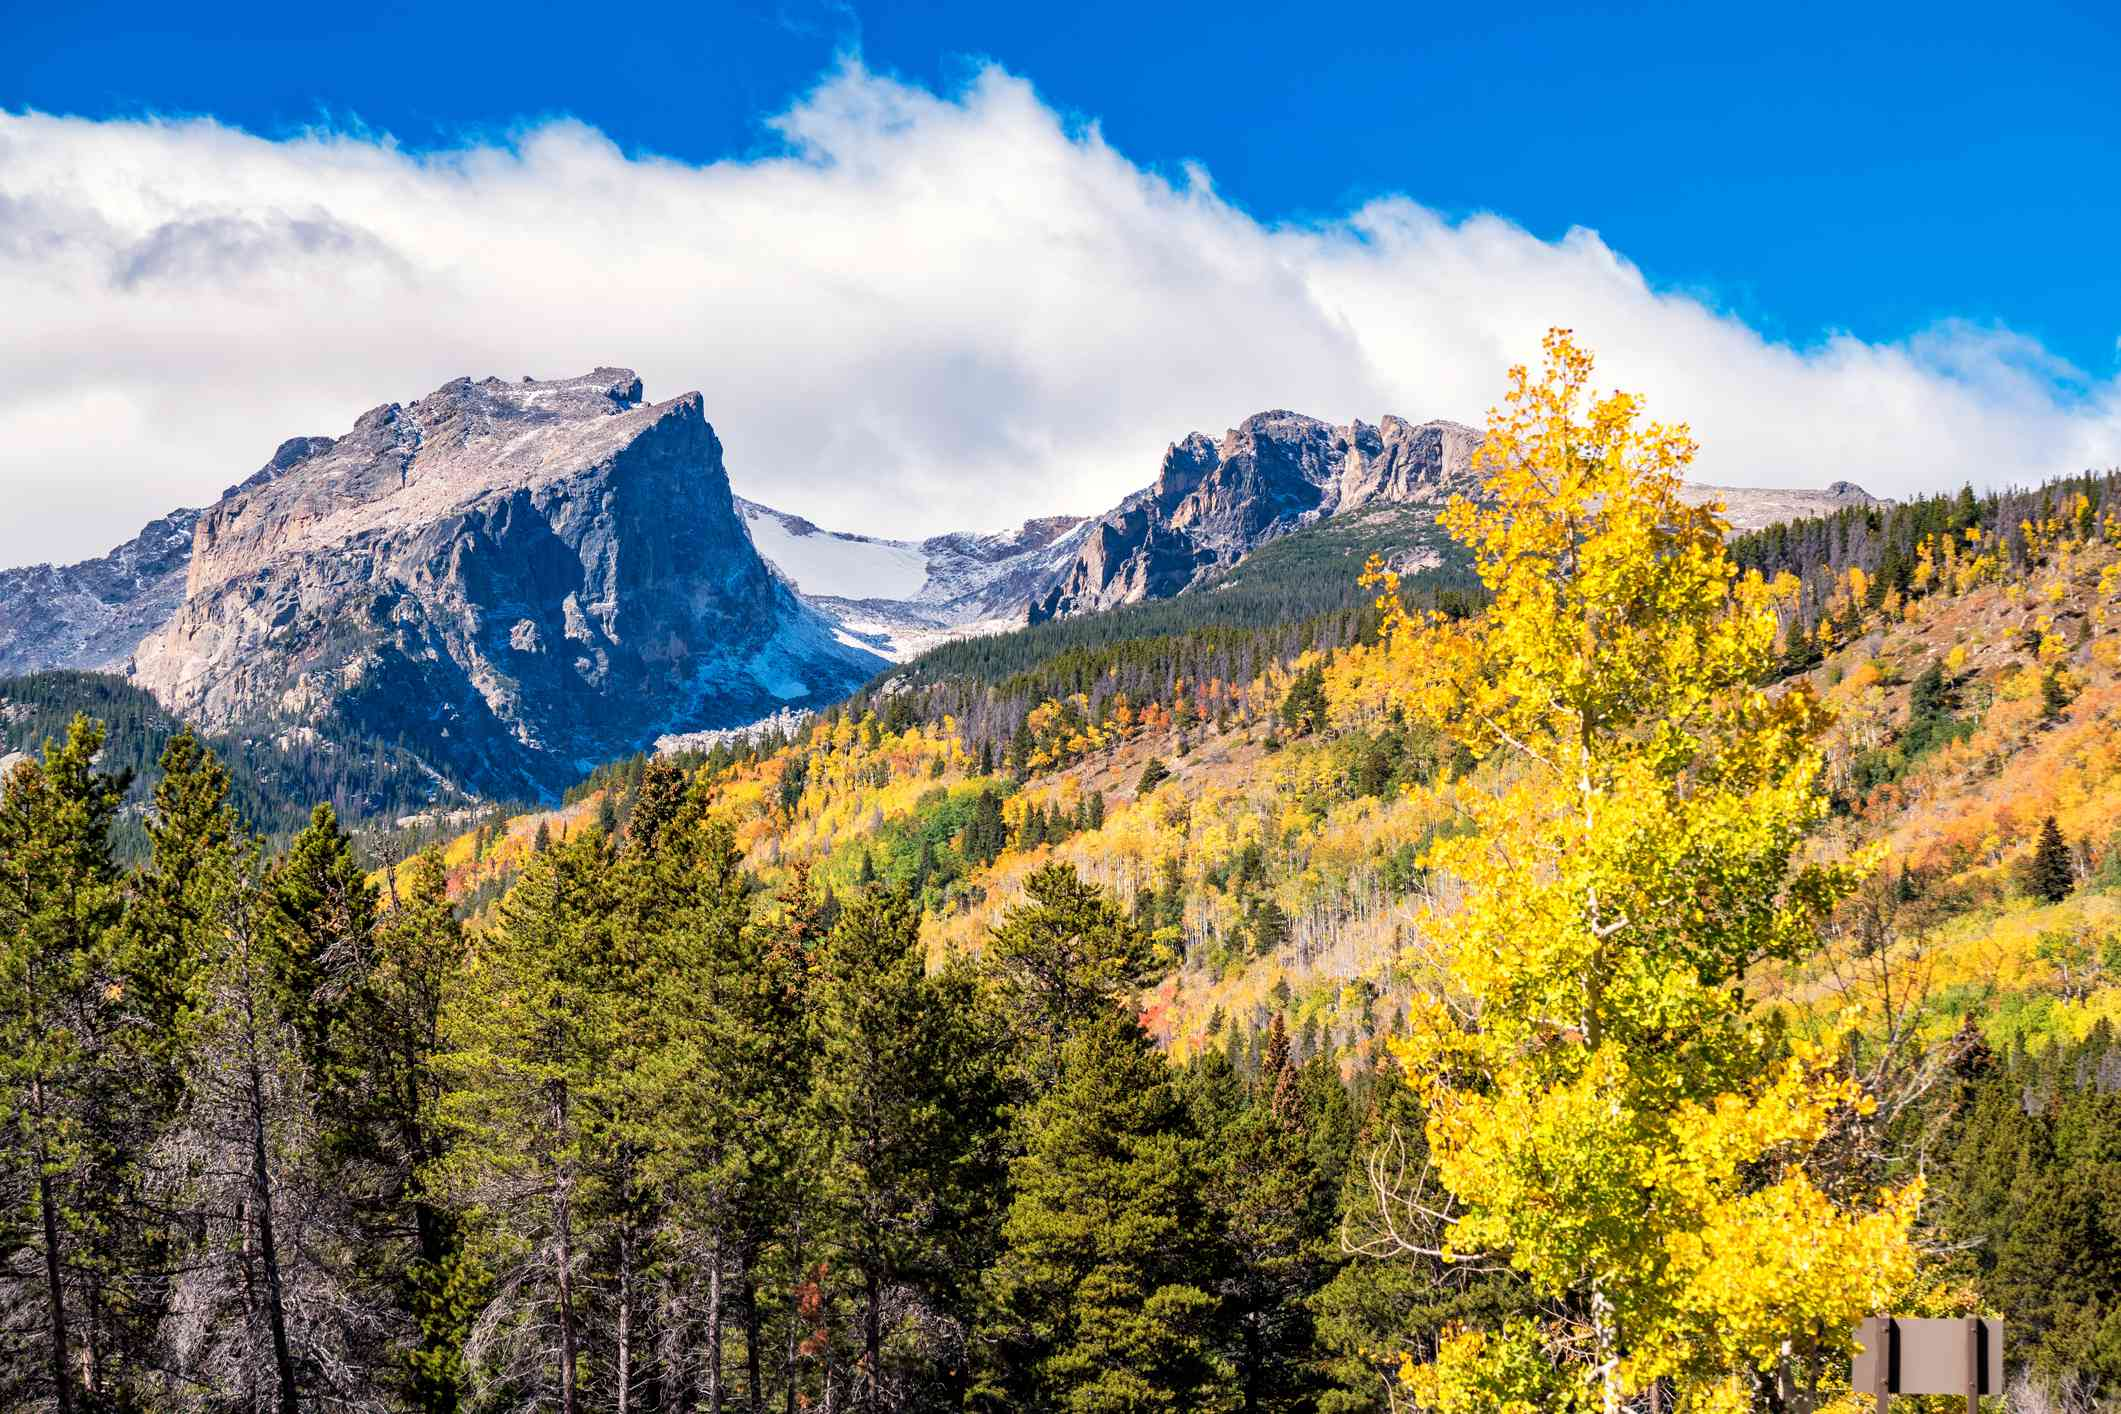 photograph of Hallett Peak and yellow aspen tree in Rocky Mountain National Park Colorado USA on a sunny autumn day.